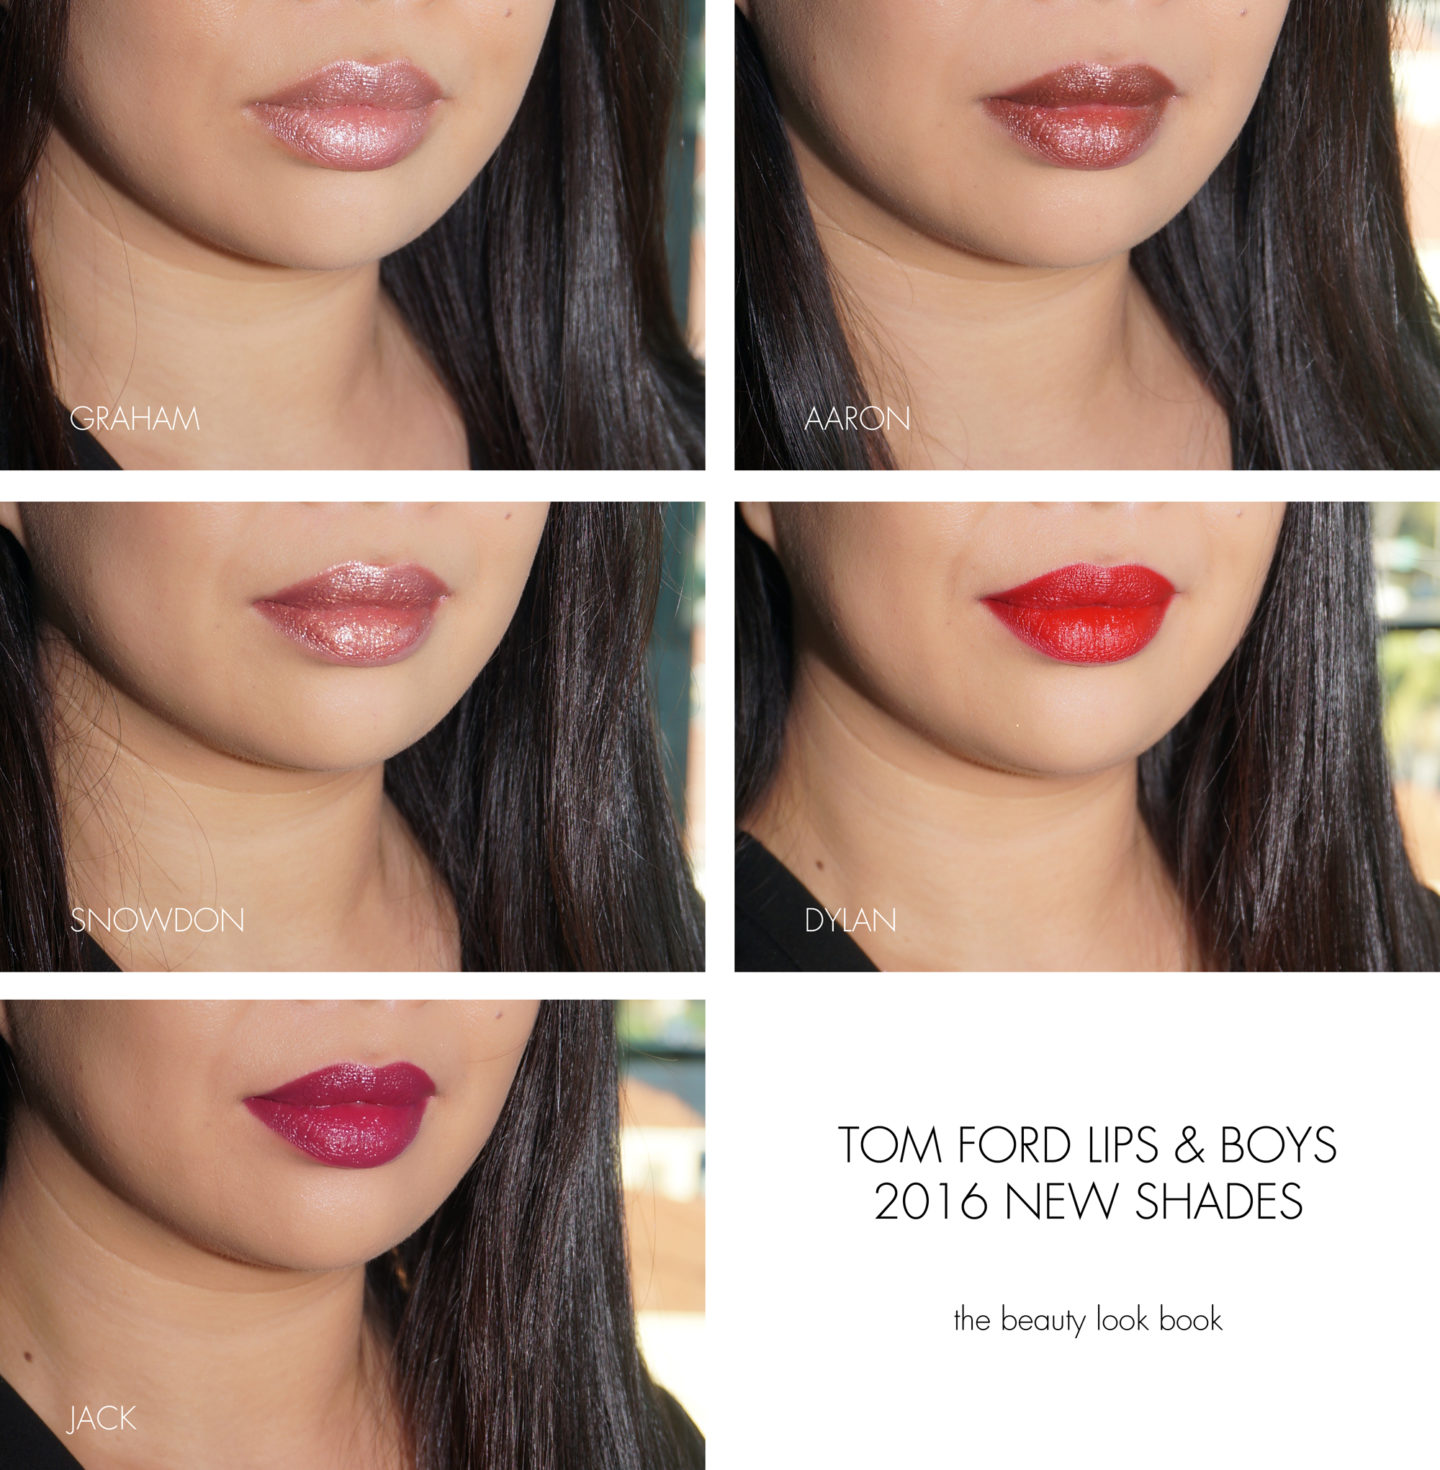 Tom Ford Lips and Boys Graham, Aaron, Snowdon, Dylan and Jack